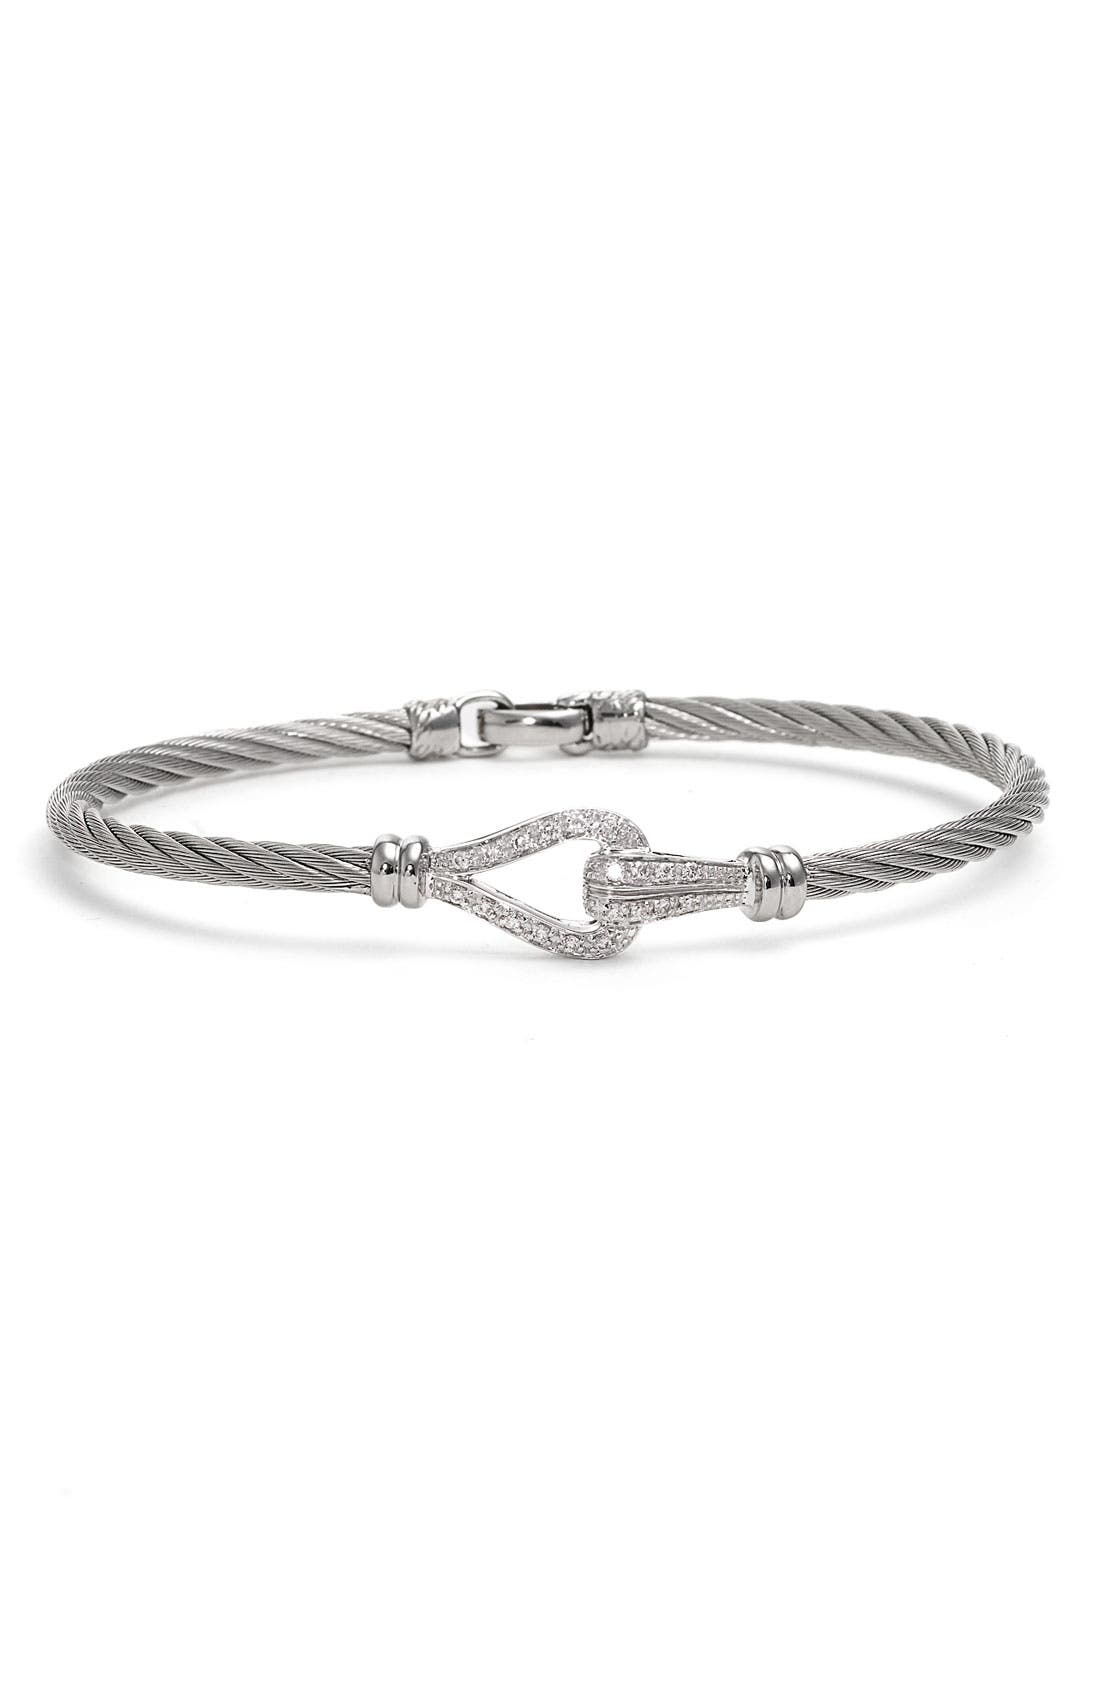 Alternate Image 1 Selected - ALOR® Overlapping Diamond Knot Bangle